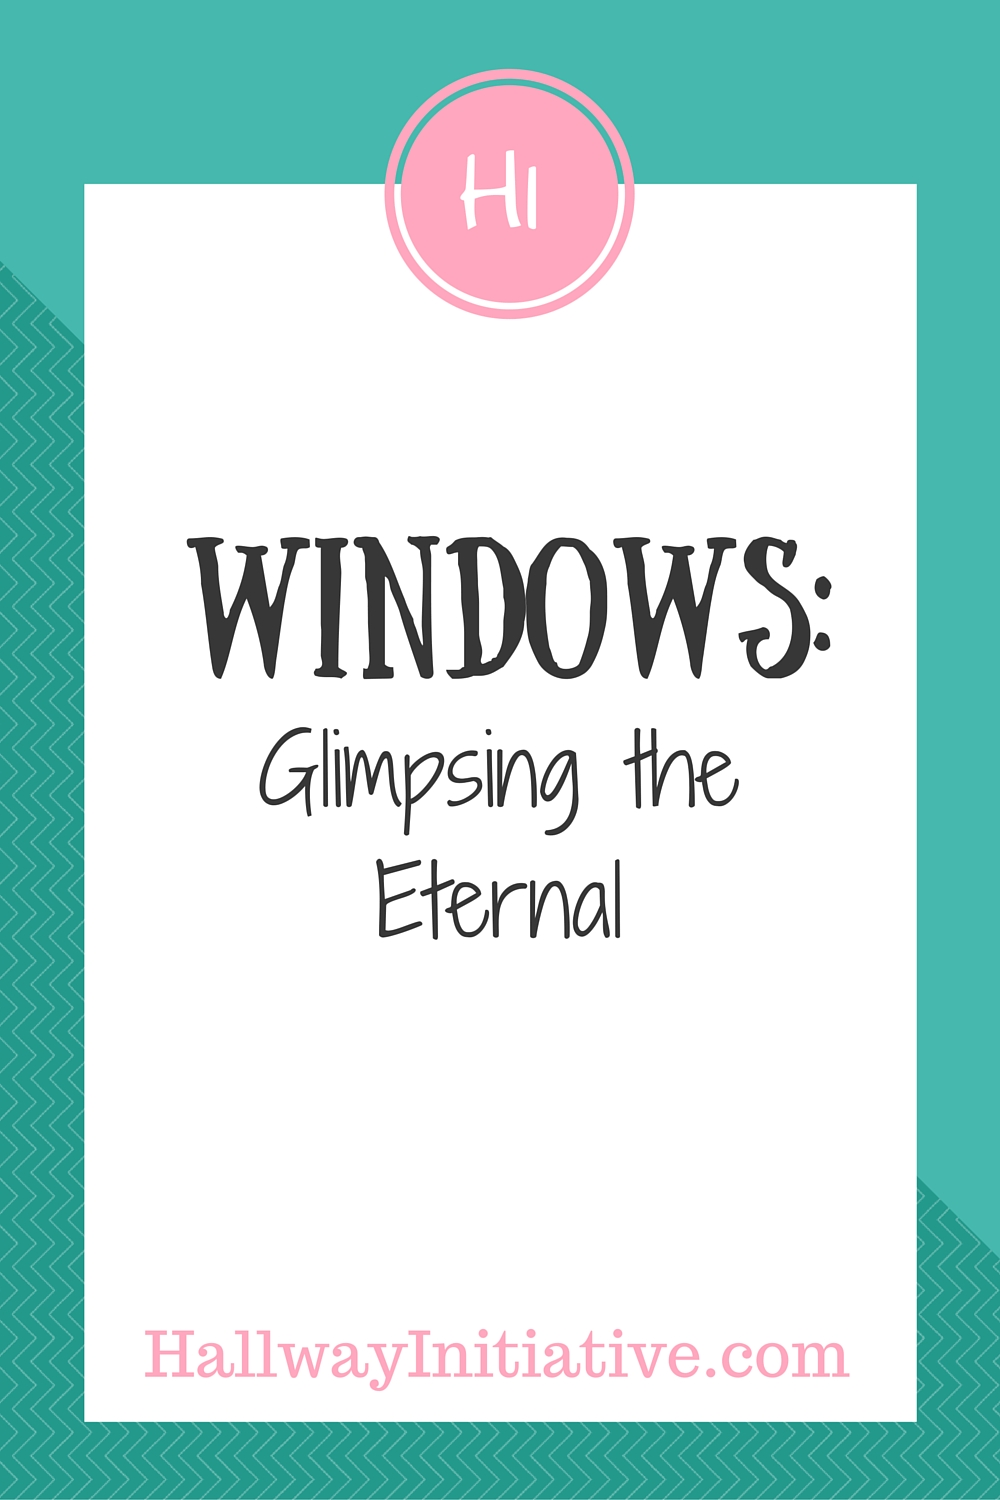 Windows: glimpsing the eternal